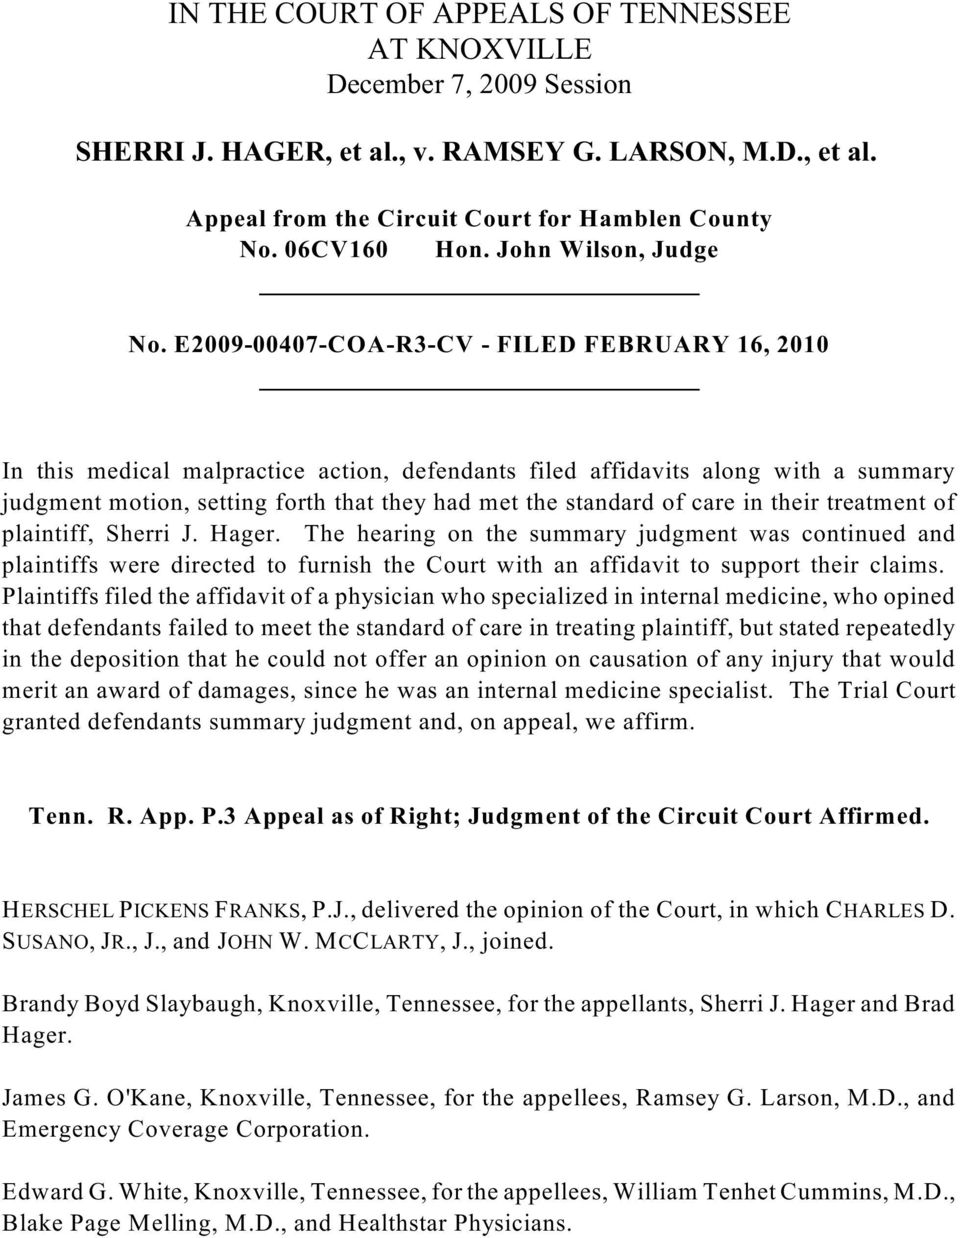 E2009-00407-COA-R3-CV - FILED FEBRUARY 16, 2010 In this medical malpractice action, defendants filed affidavits along with a summary judgment motion, setting forth that they had met the standard of